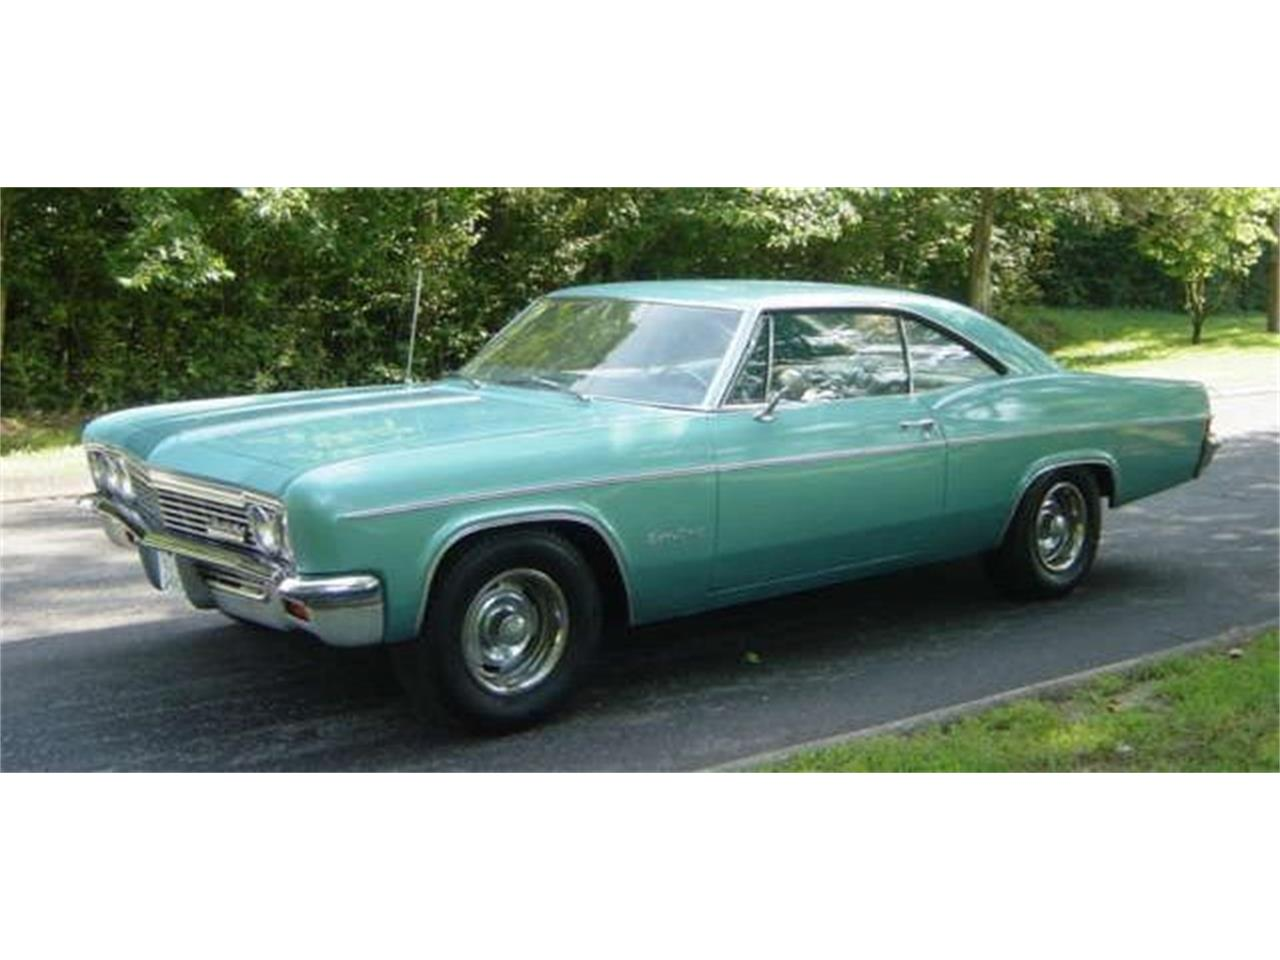 1966 Chevrolet Impala For Sale Cc 1102829 Chevy 2 Door Large Picture Of 66 Nmy5